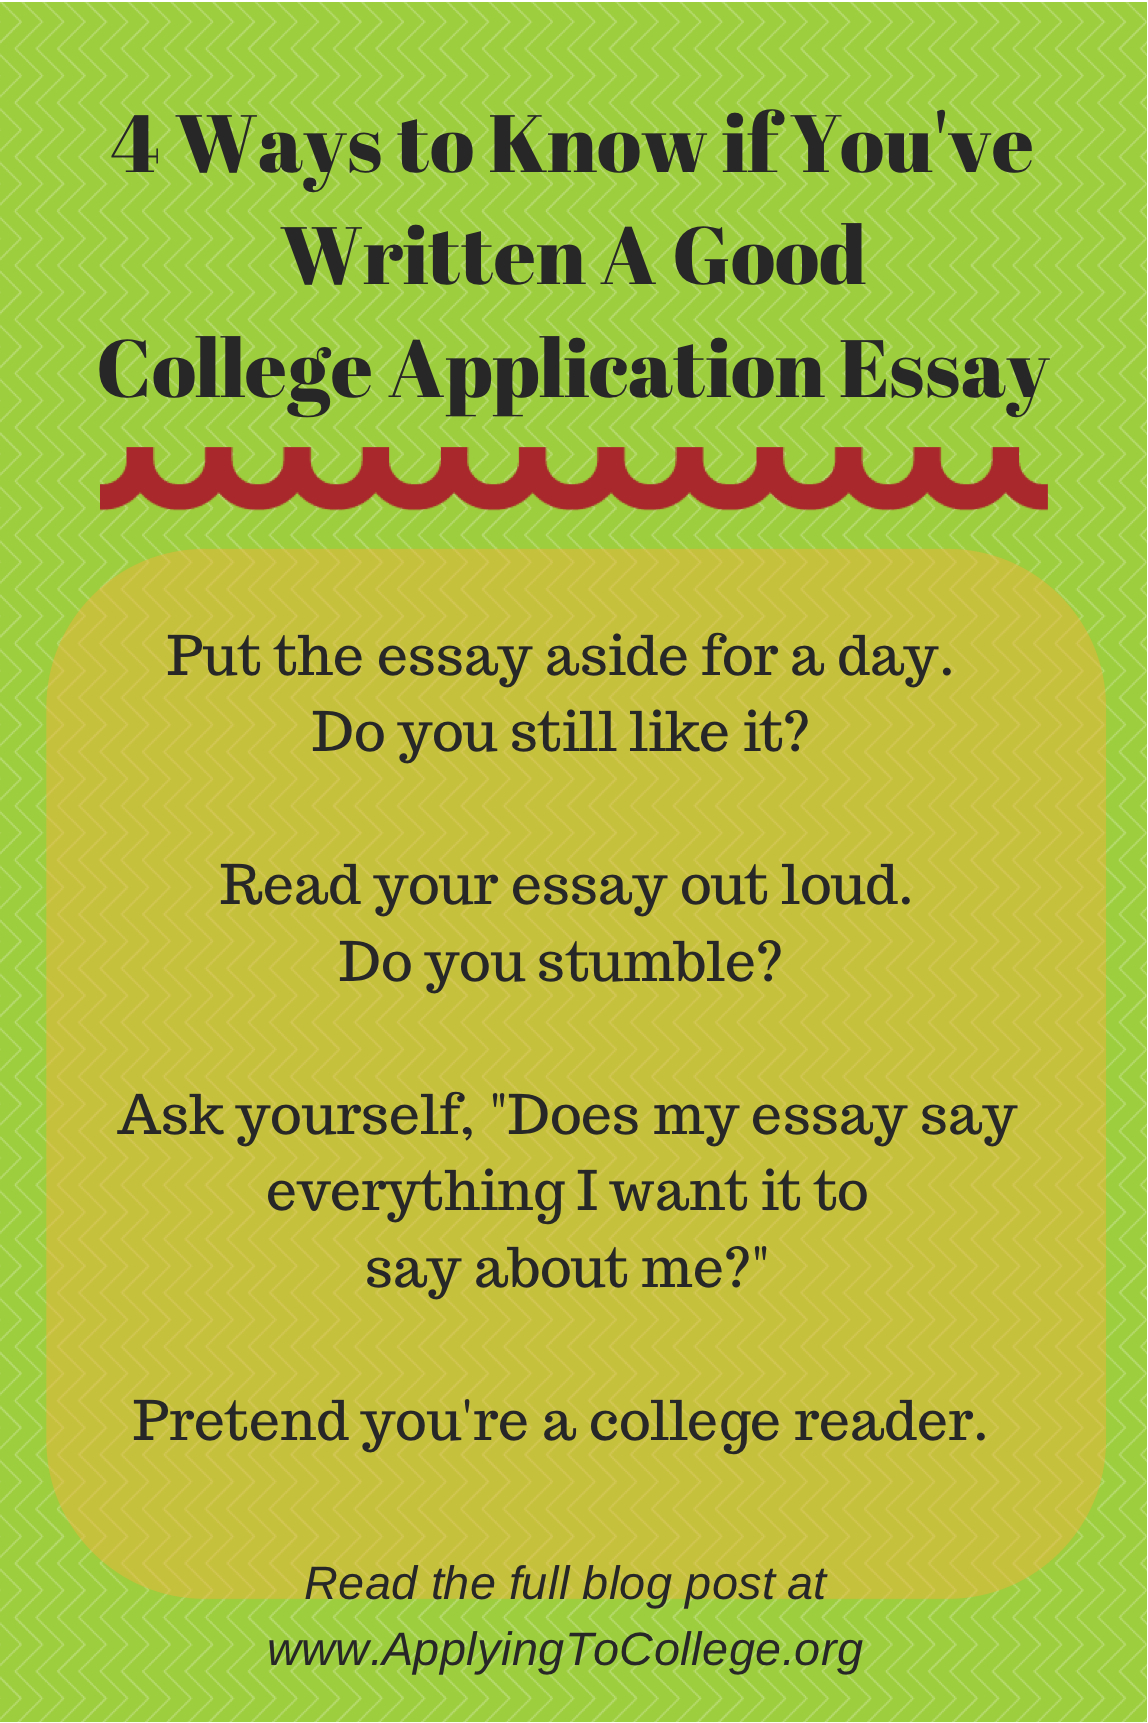 Examples of well written college essays